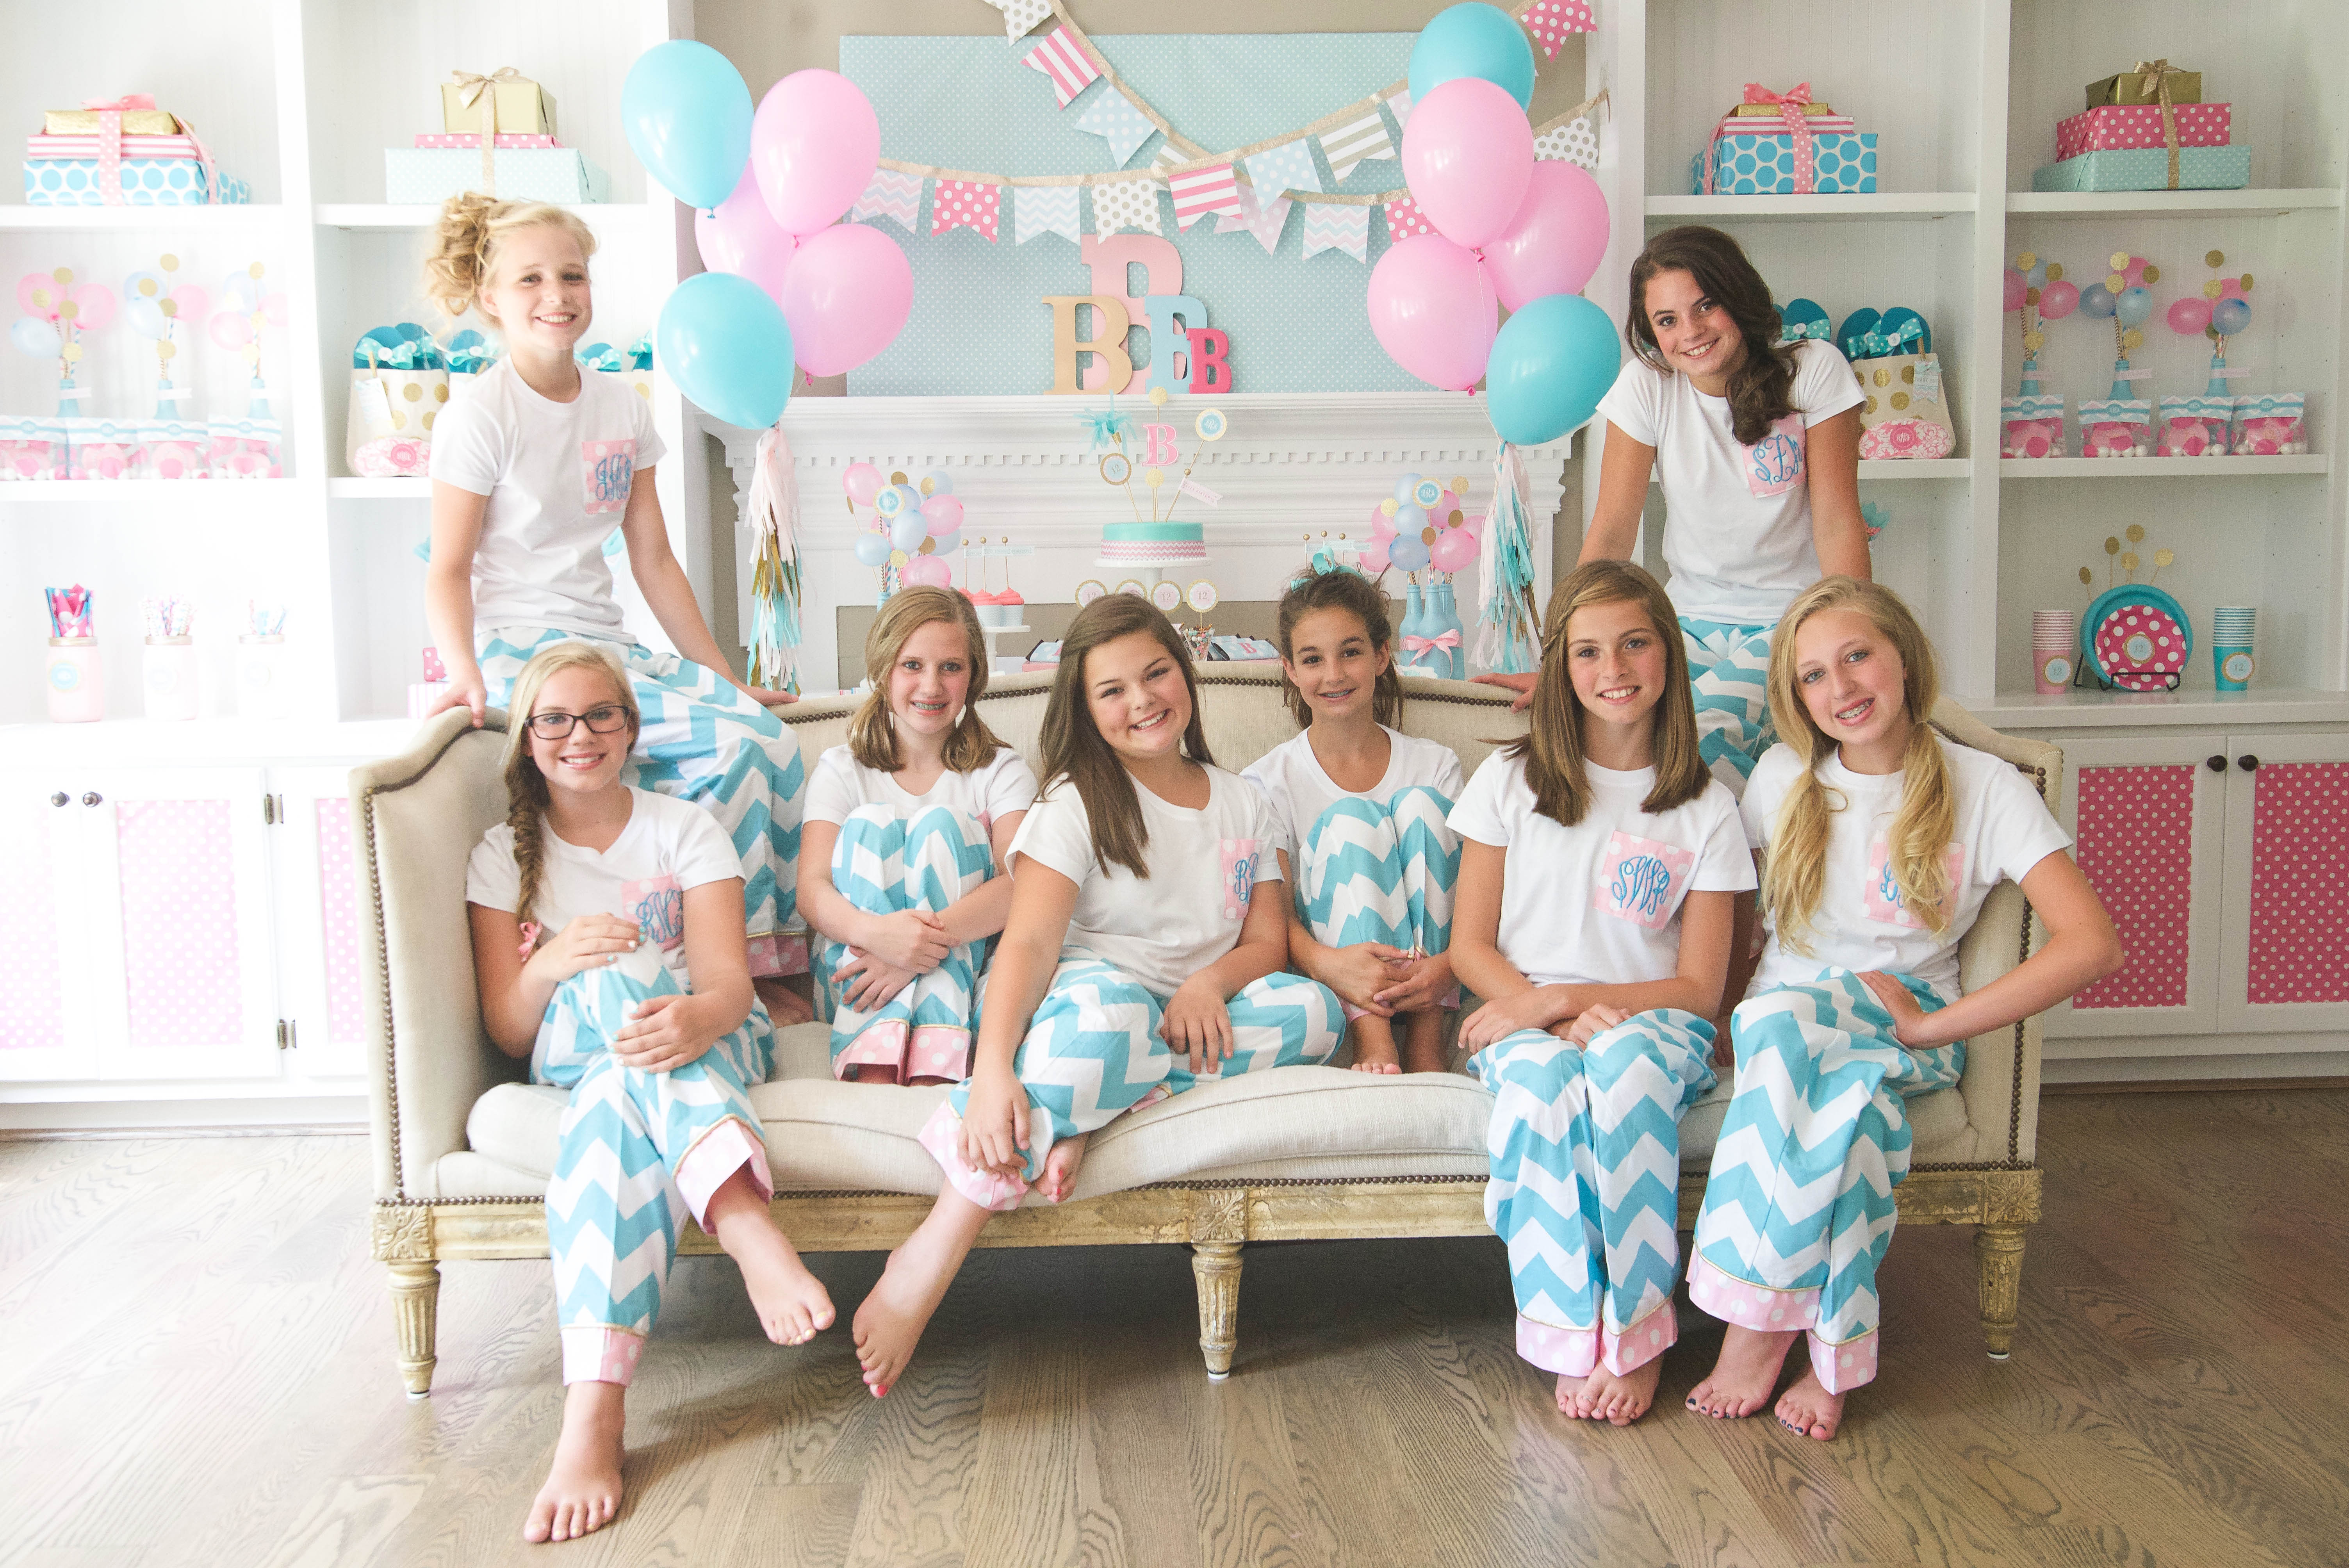 Birthday Party Ideas For 12 Year Olds In San Francisco